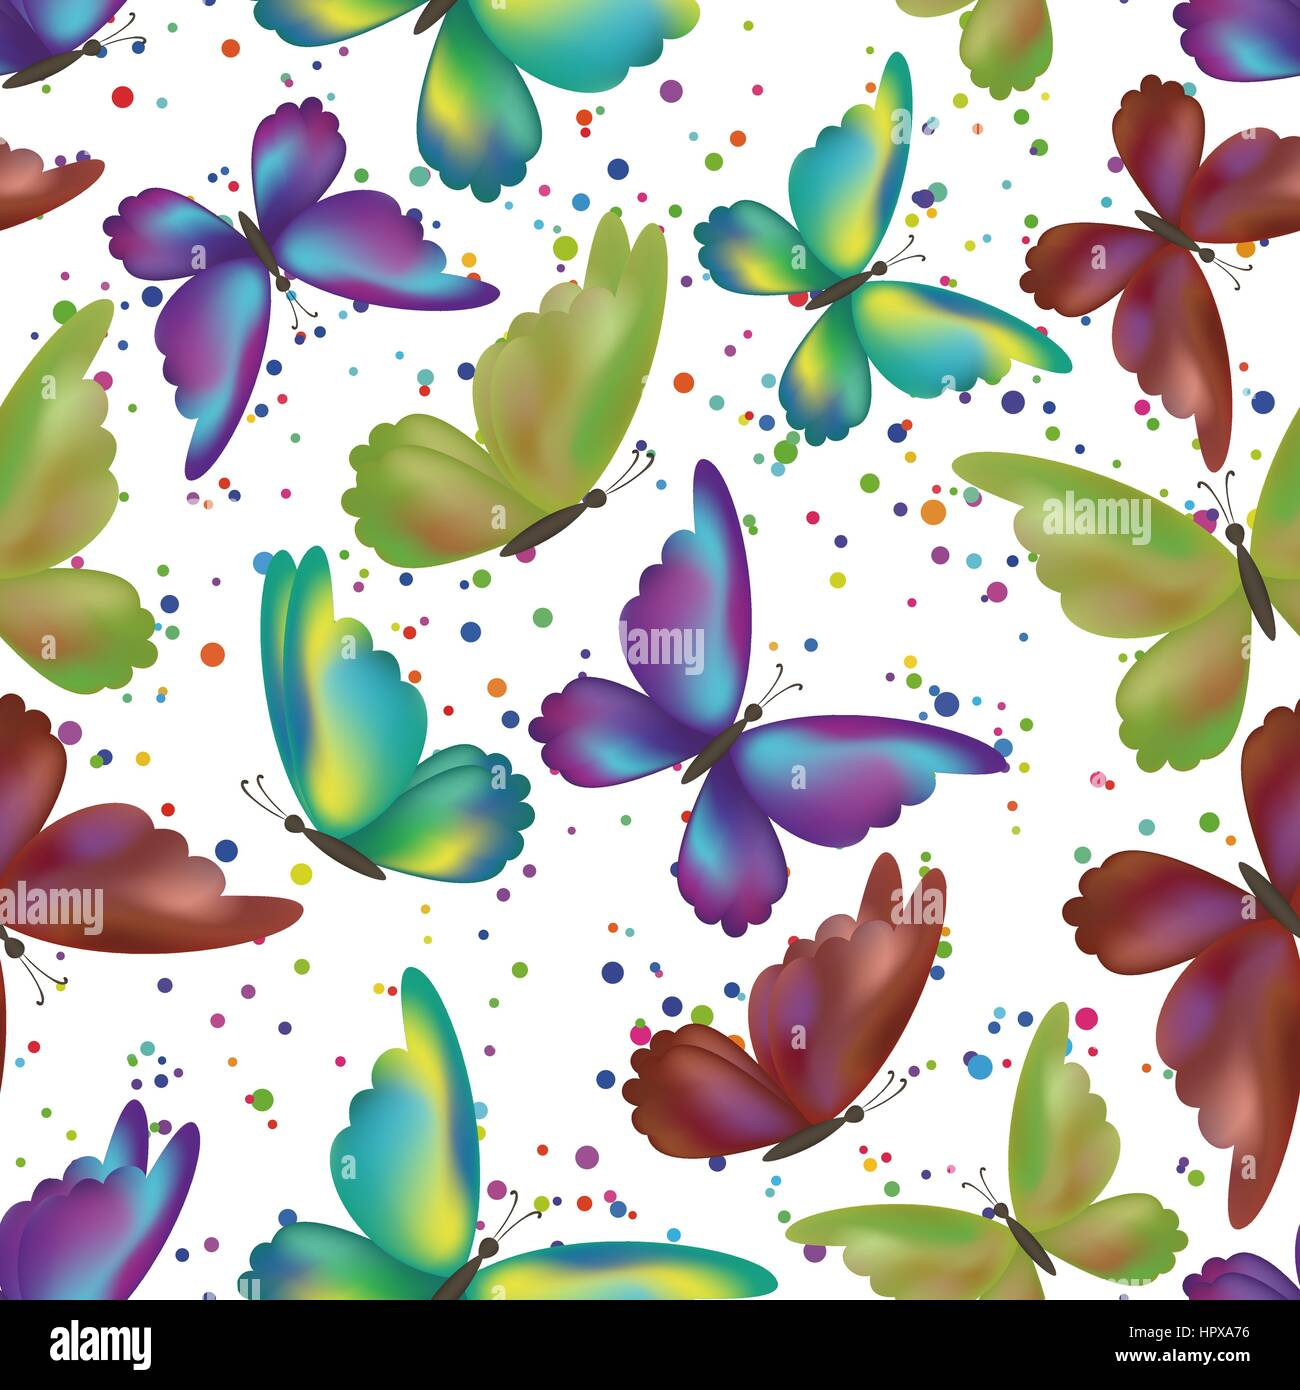 Seamless Pattern Colorful Butterflies On Abstract Background